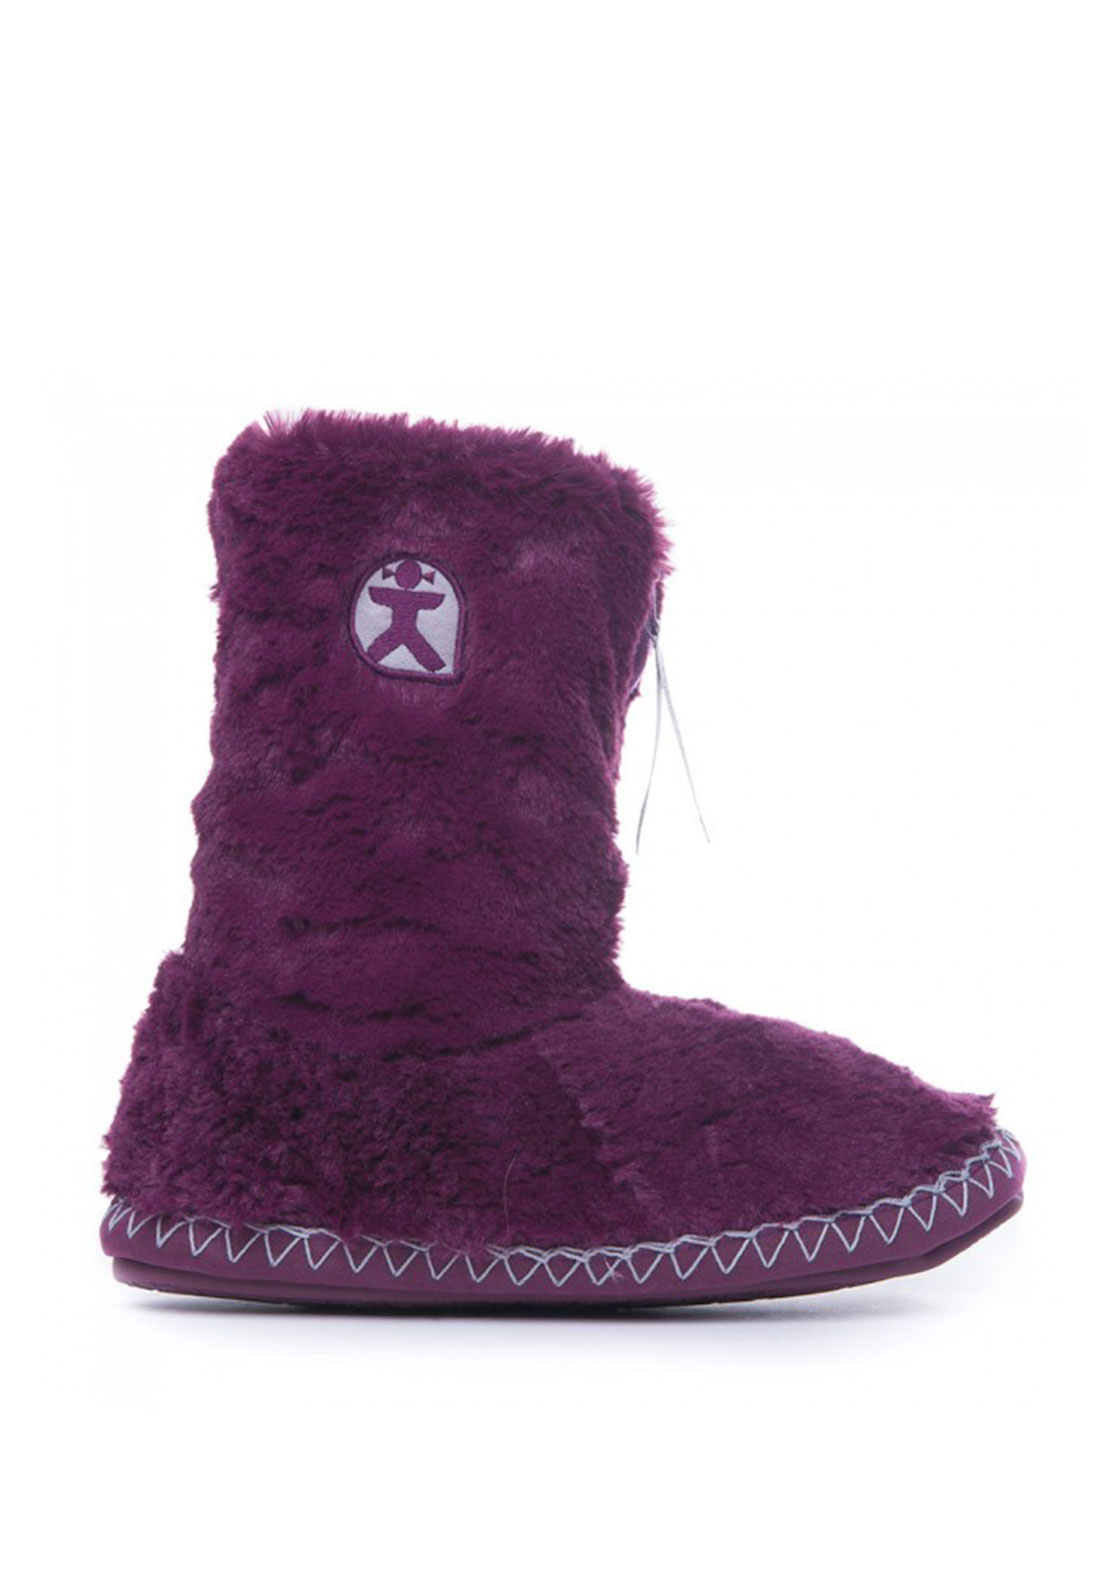 Bedroom Athletics Marilyn Slipper Boots